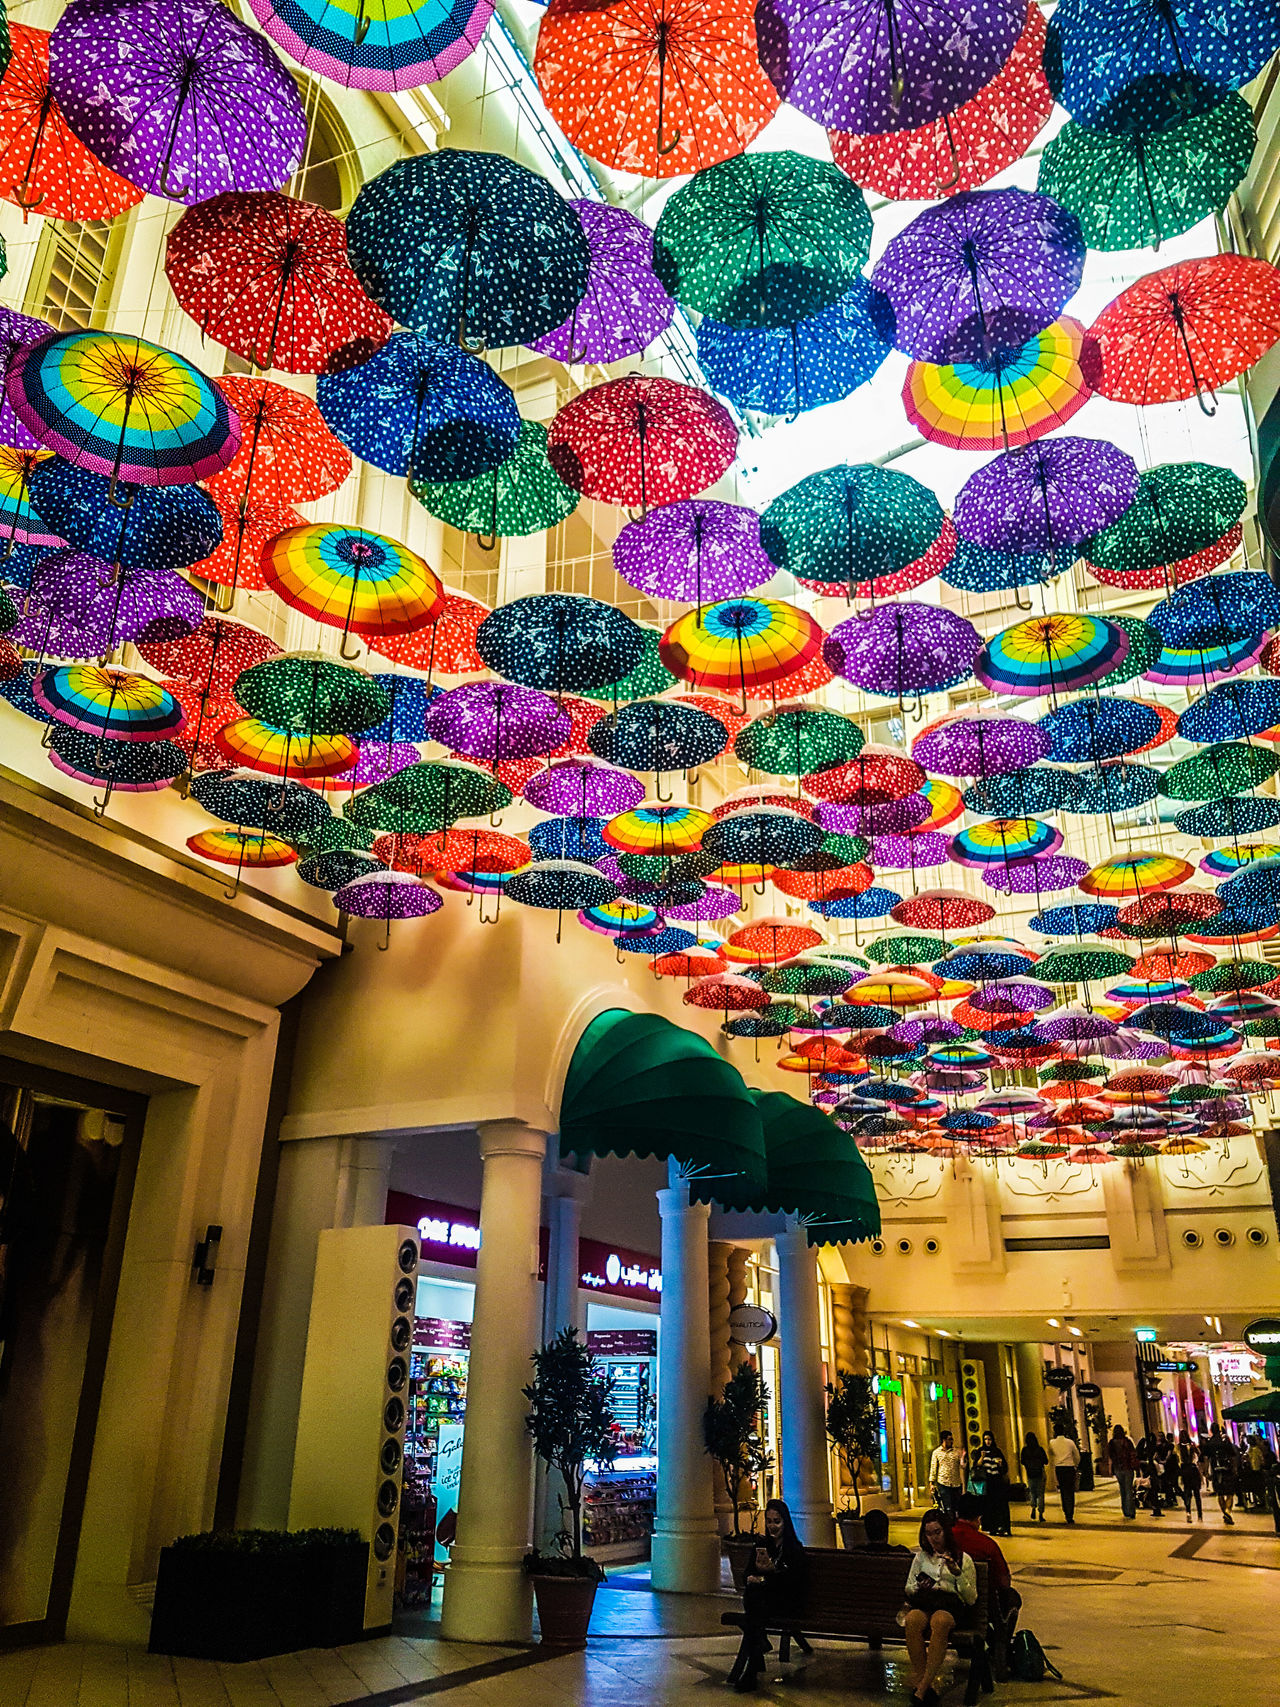 Multi Colored Architecture Travel Destinations Indoors  Dubai Buildings Dubai Streetphotography Amazing Structure Dubaibuildings UAE UAE , Dubai Dubailife Dubaicity Dubai Dubai Mall Dubai Mall Attractions Dubai Mall ❤️ Mall Of Dubai Downtown Dubai Dubai Mega Structures Mega Structure Mega Structures Adapted To The City